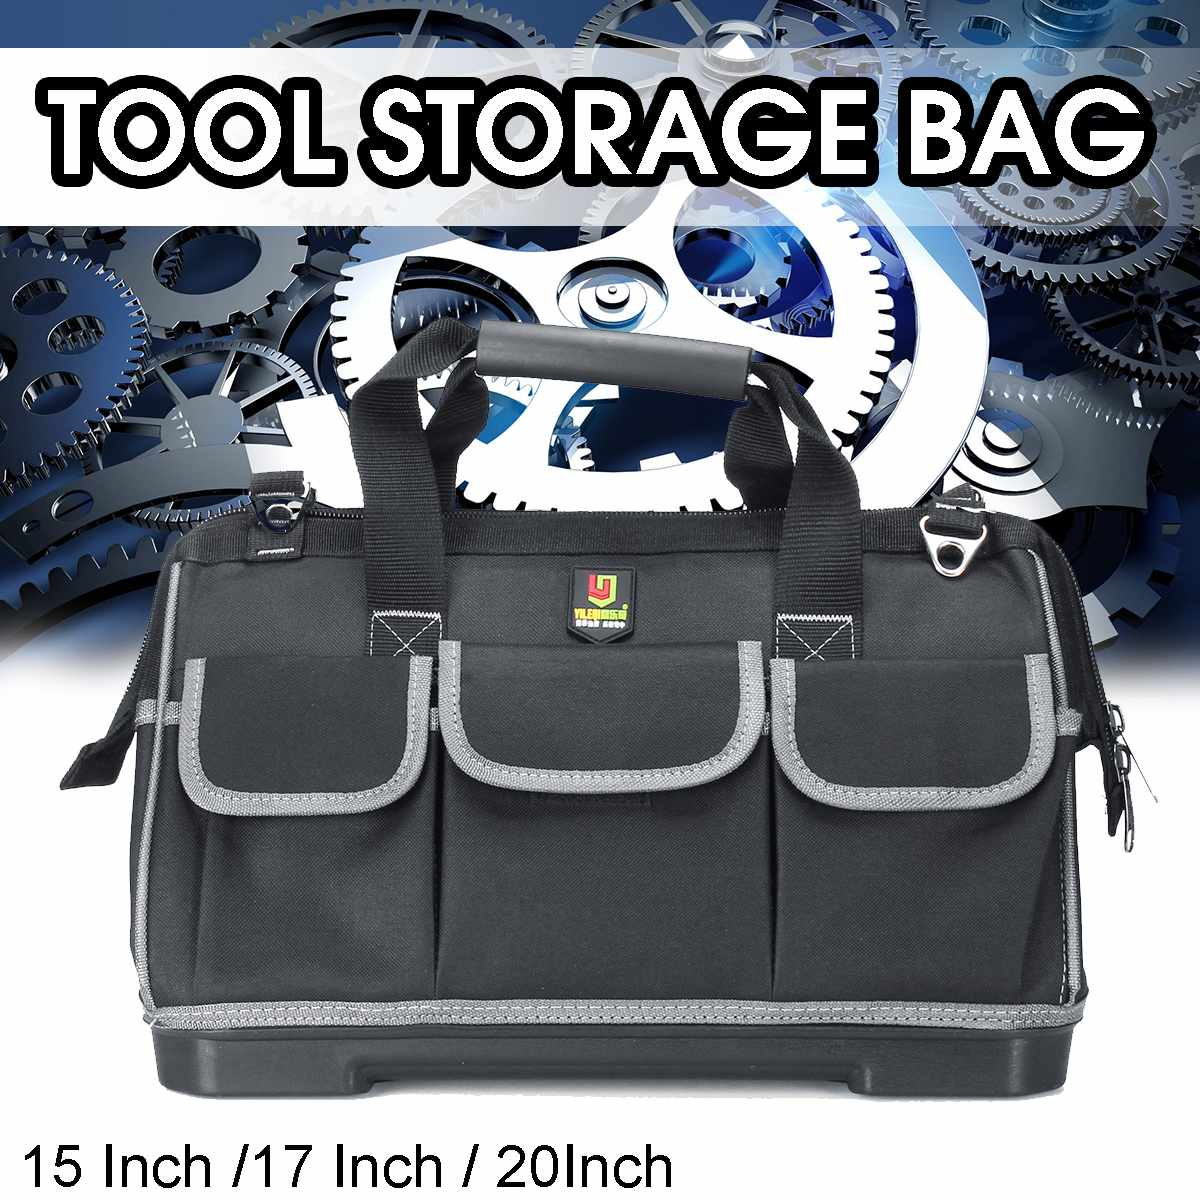 15/17/20 Inch Tool Bag Oxford Multi-pocket Waterproof Large Capacity Bag For Tools Hardware Storage Bag Electrician Toolbag Case